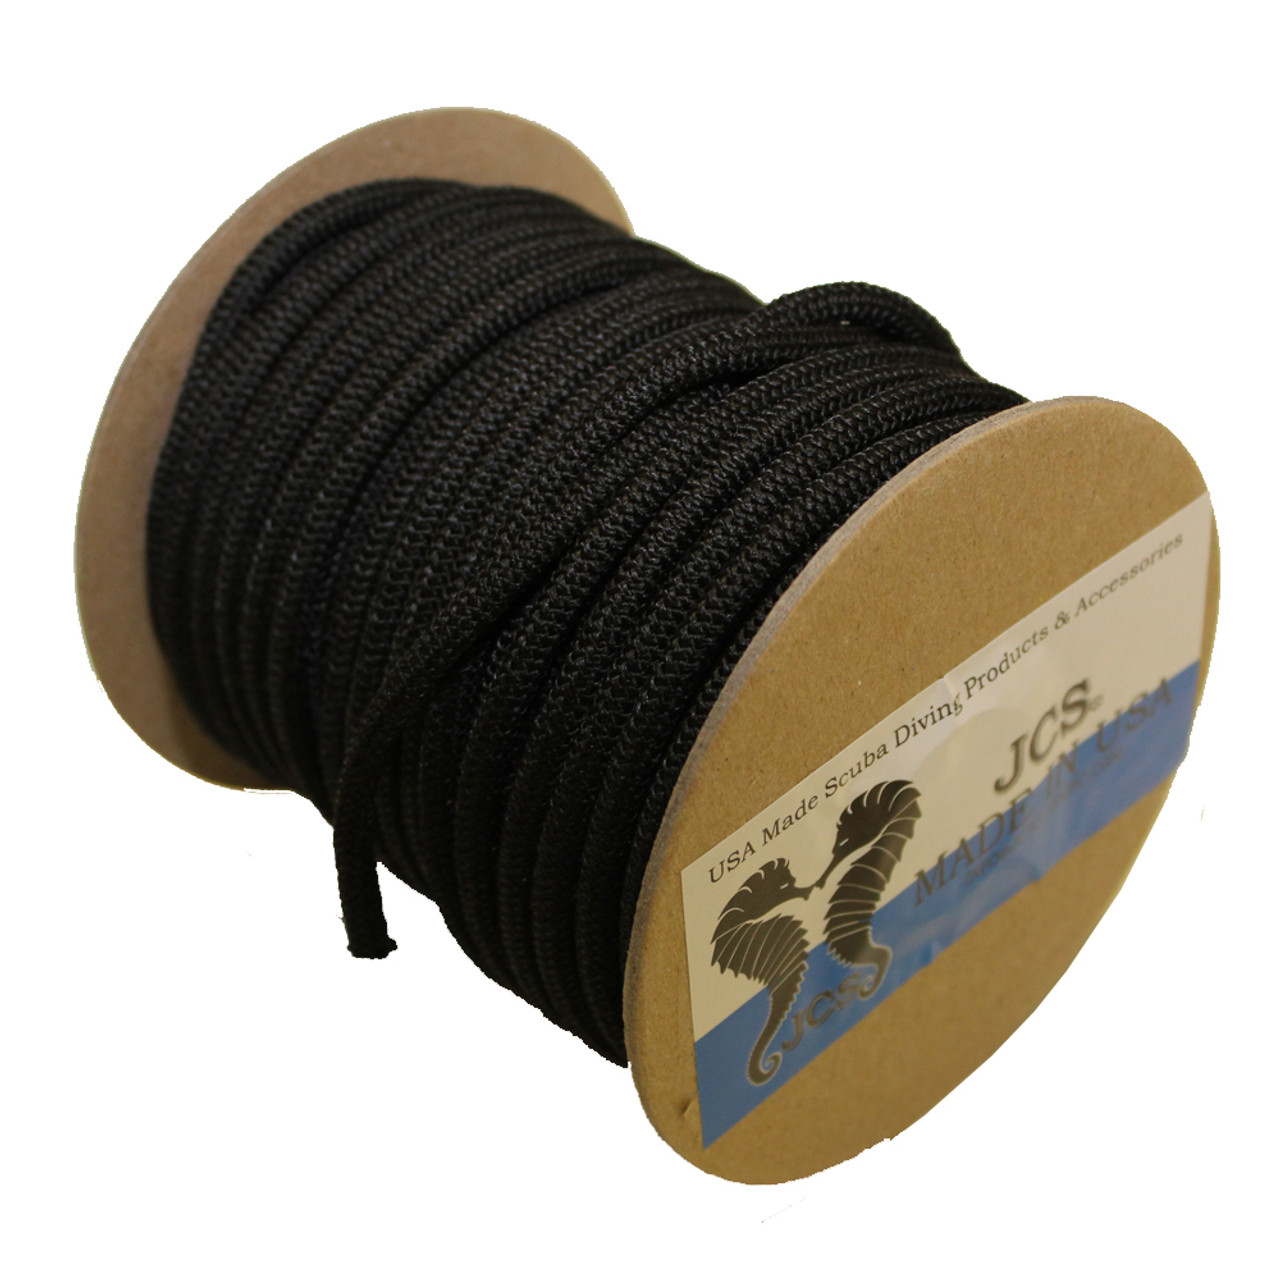 NeoStretch PP #4, 1/8inch x 100 Feet Slip-Resistant Textured Shock (Bungee) Cord, Black